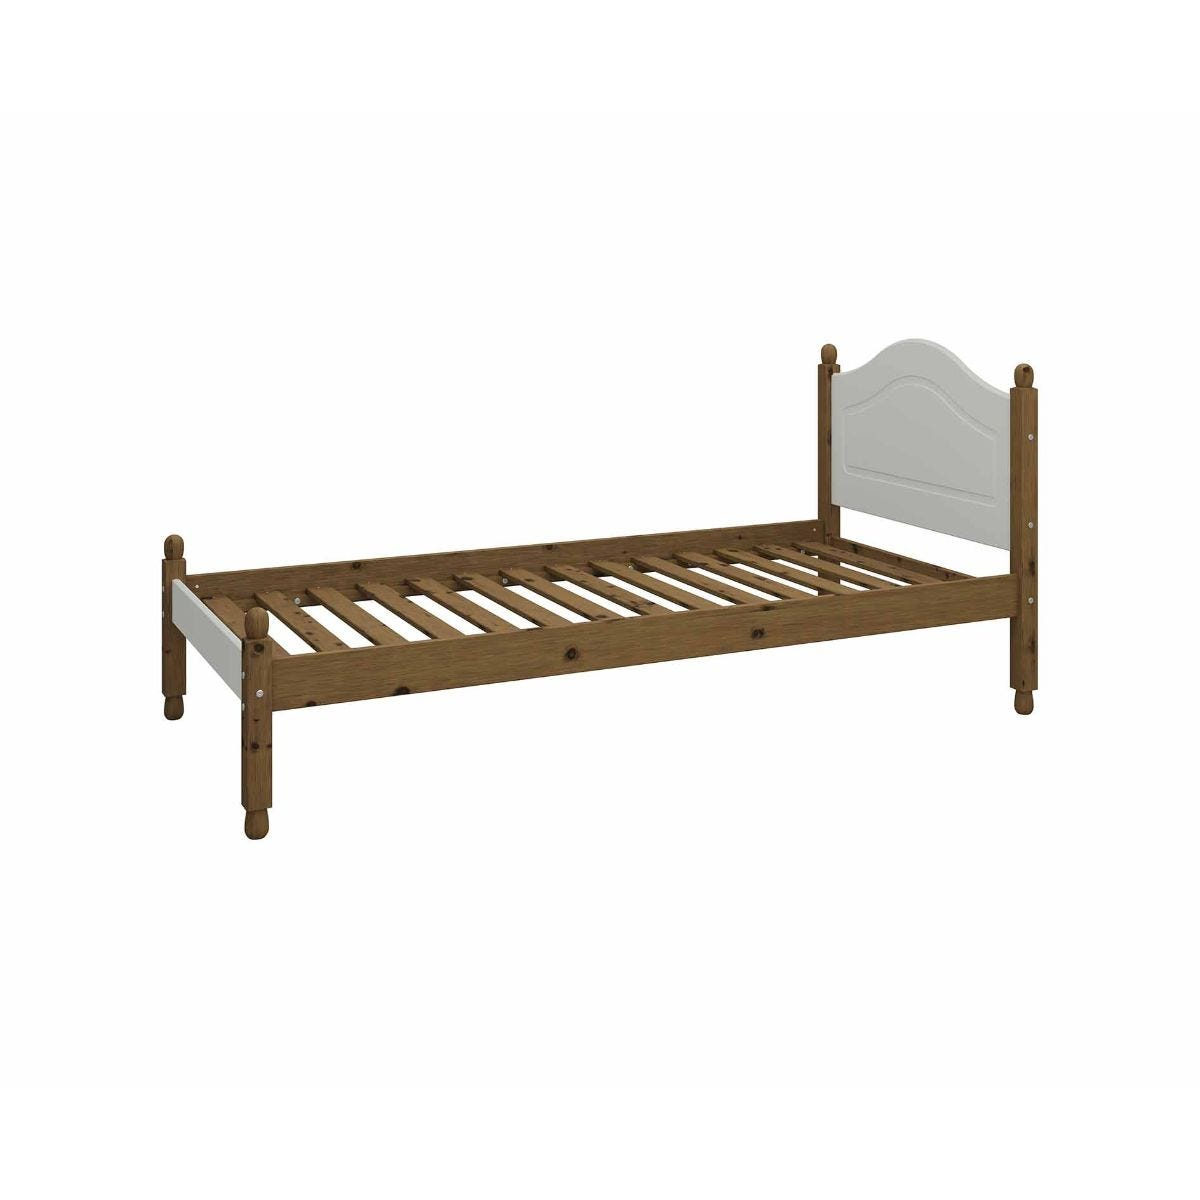 Steens Richmond Single Bed Frame 3ft, Grey